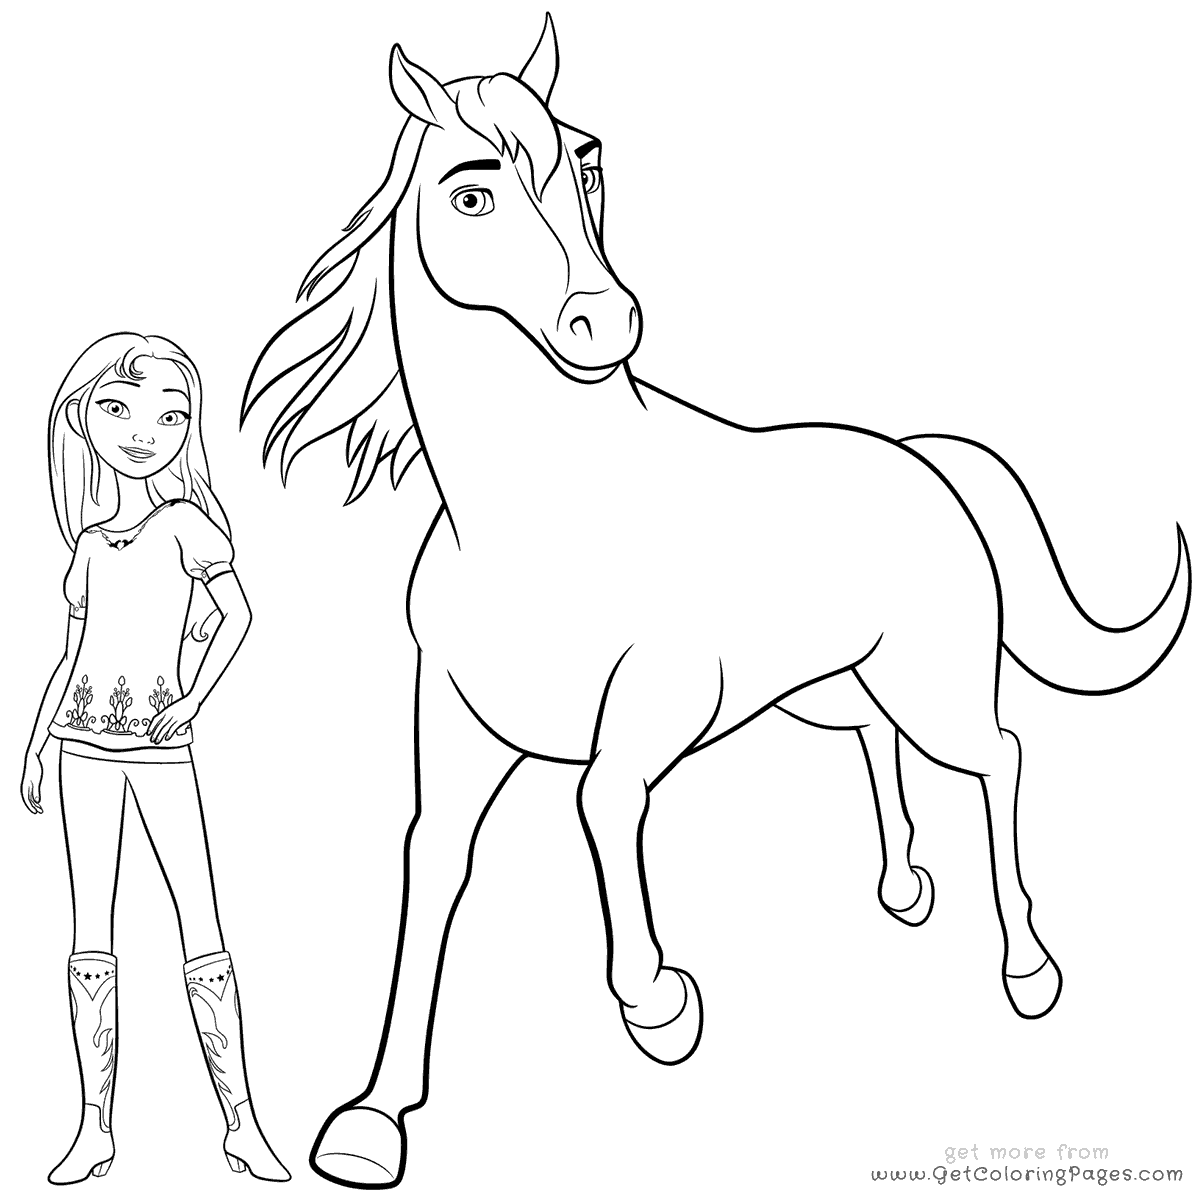 Horse Coloring Pages For Girls At Getcolorings